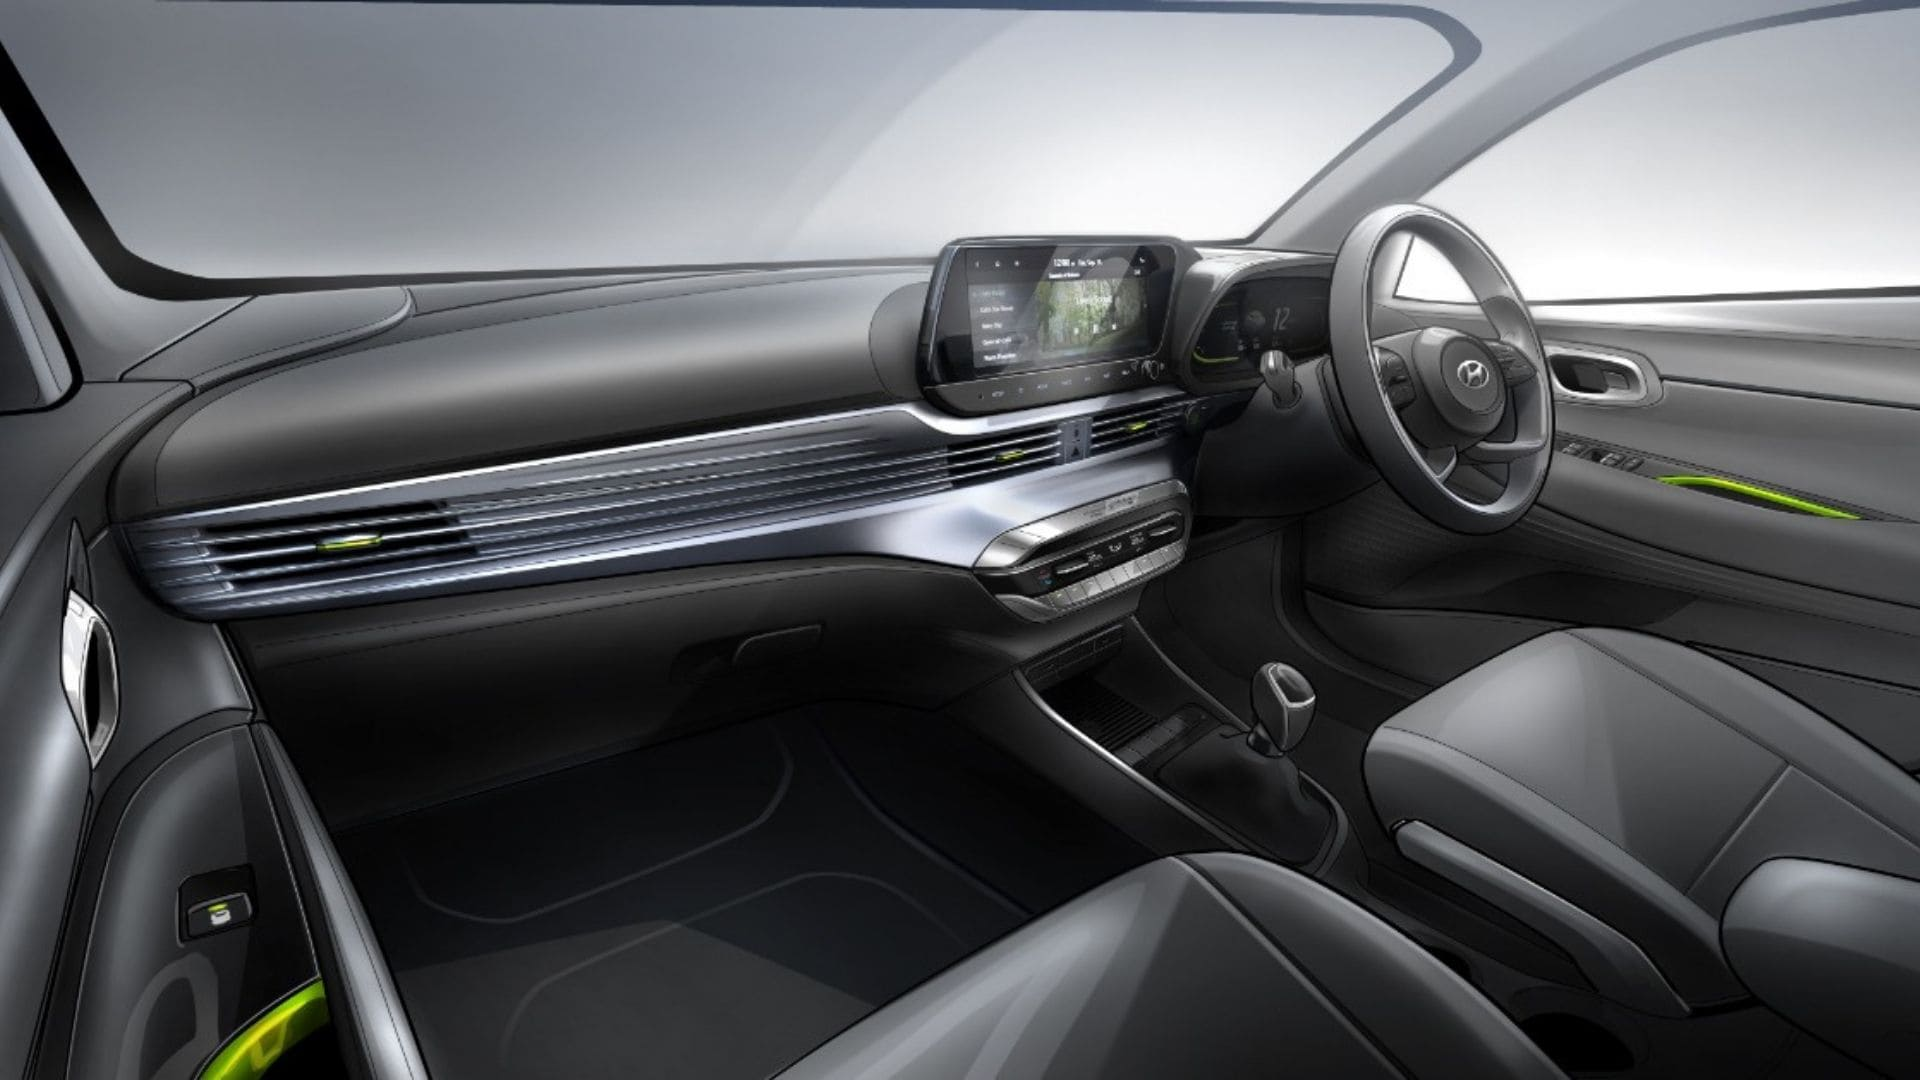 All-New Hyundai i20 Interior